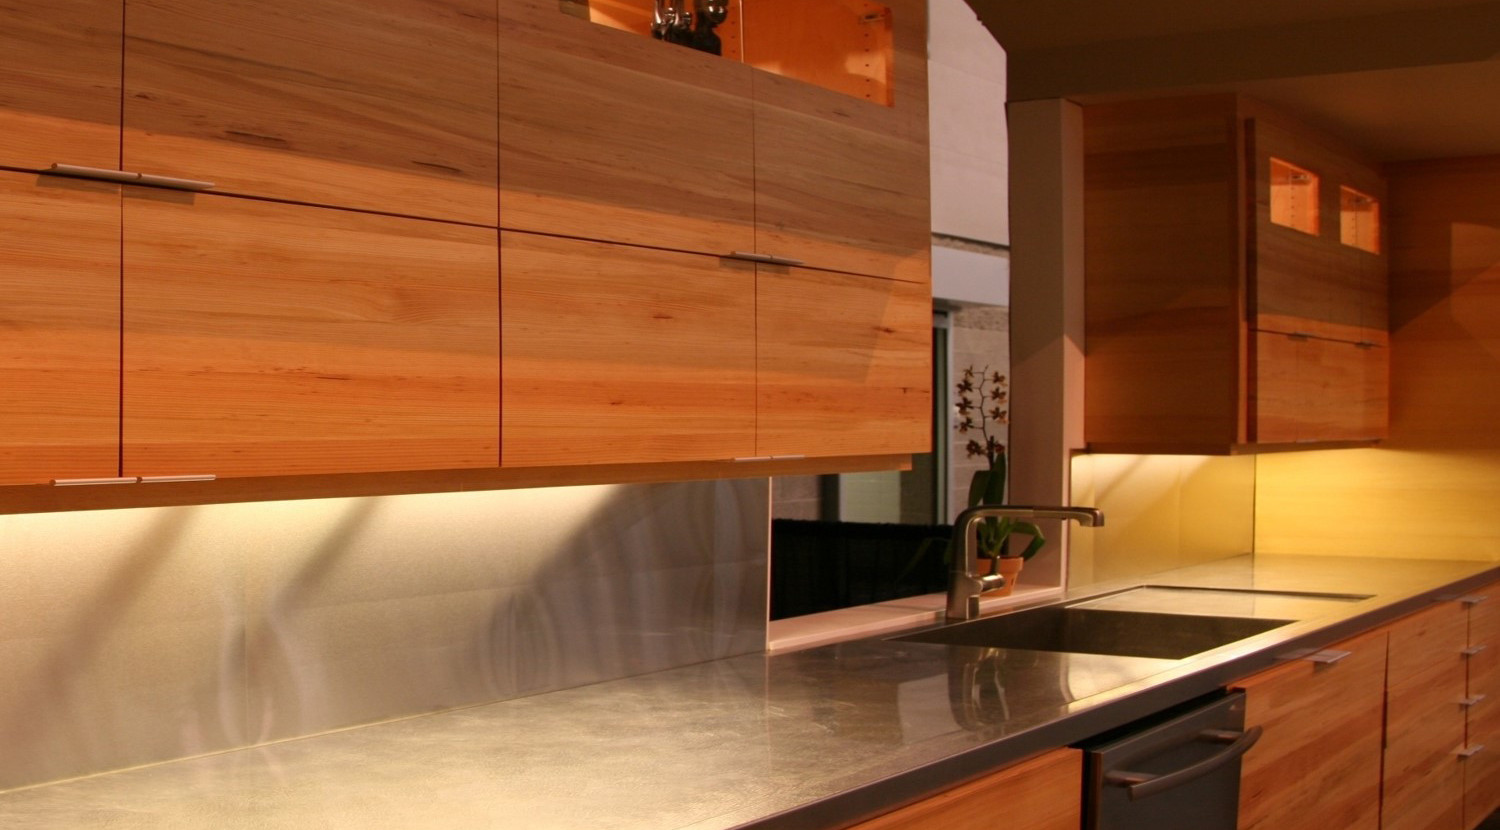 INTEGRATED STAINLESS STEEL COUNTER AND SINK